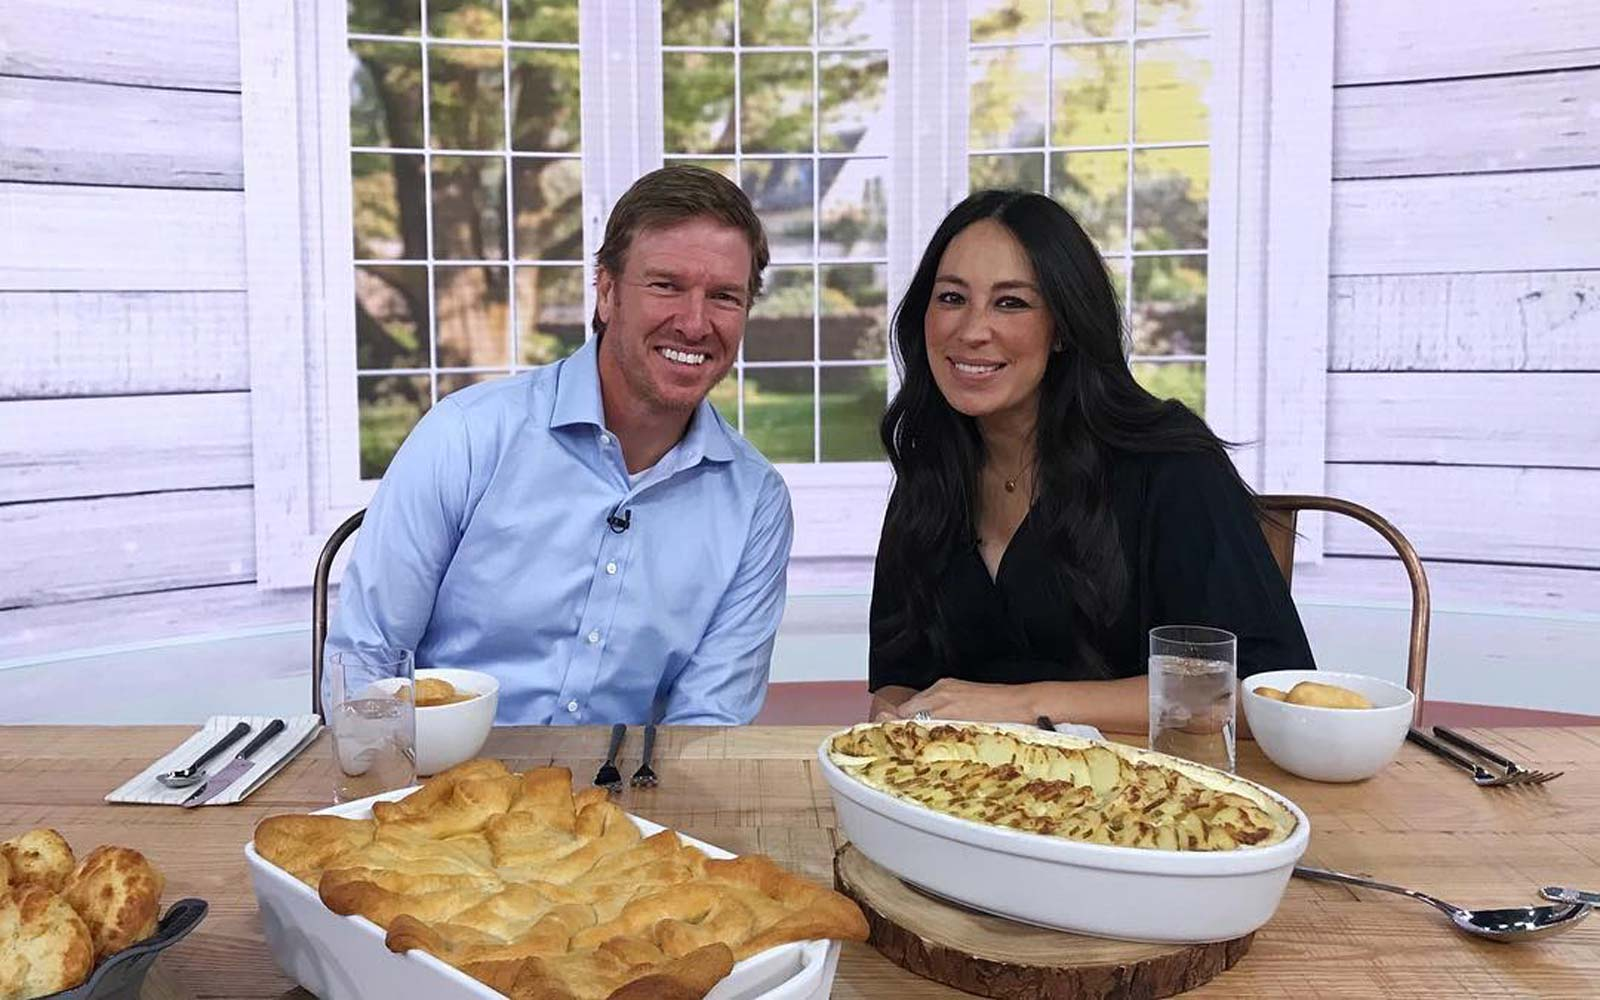 Attention 'Fixer Upper' Fans: Chip and Joanna Gaines Are Getting Their Own TV Network